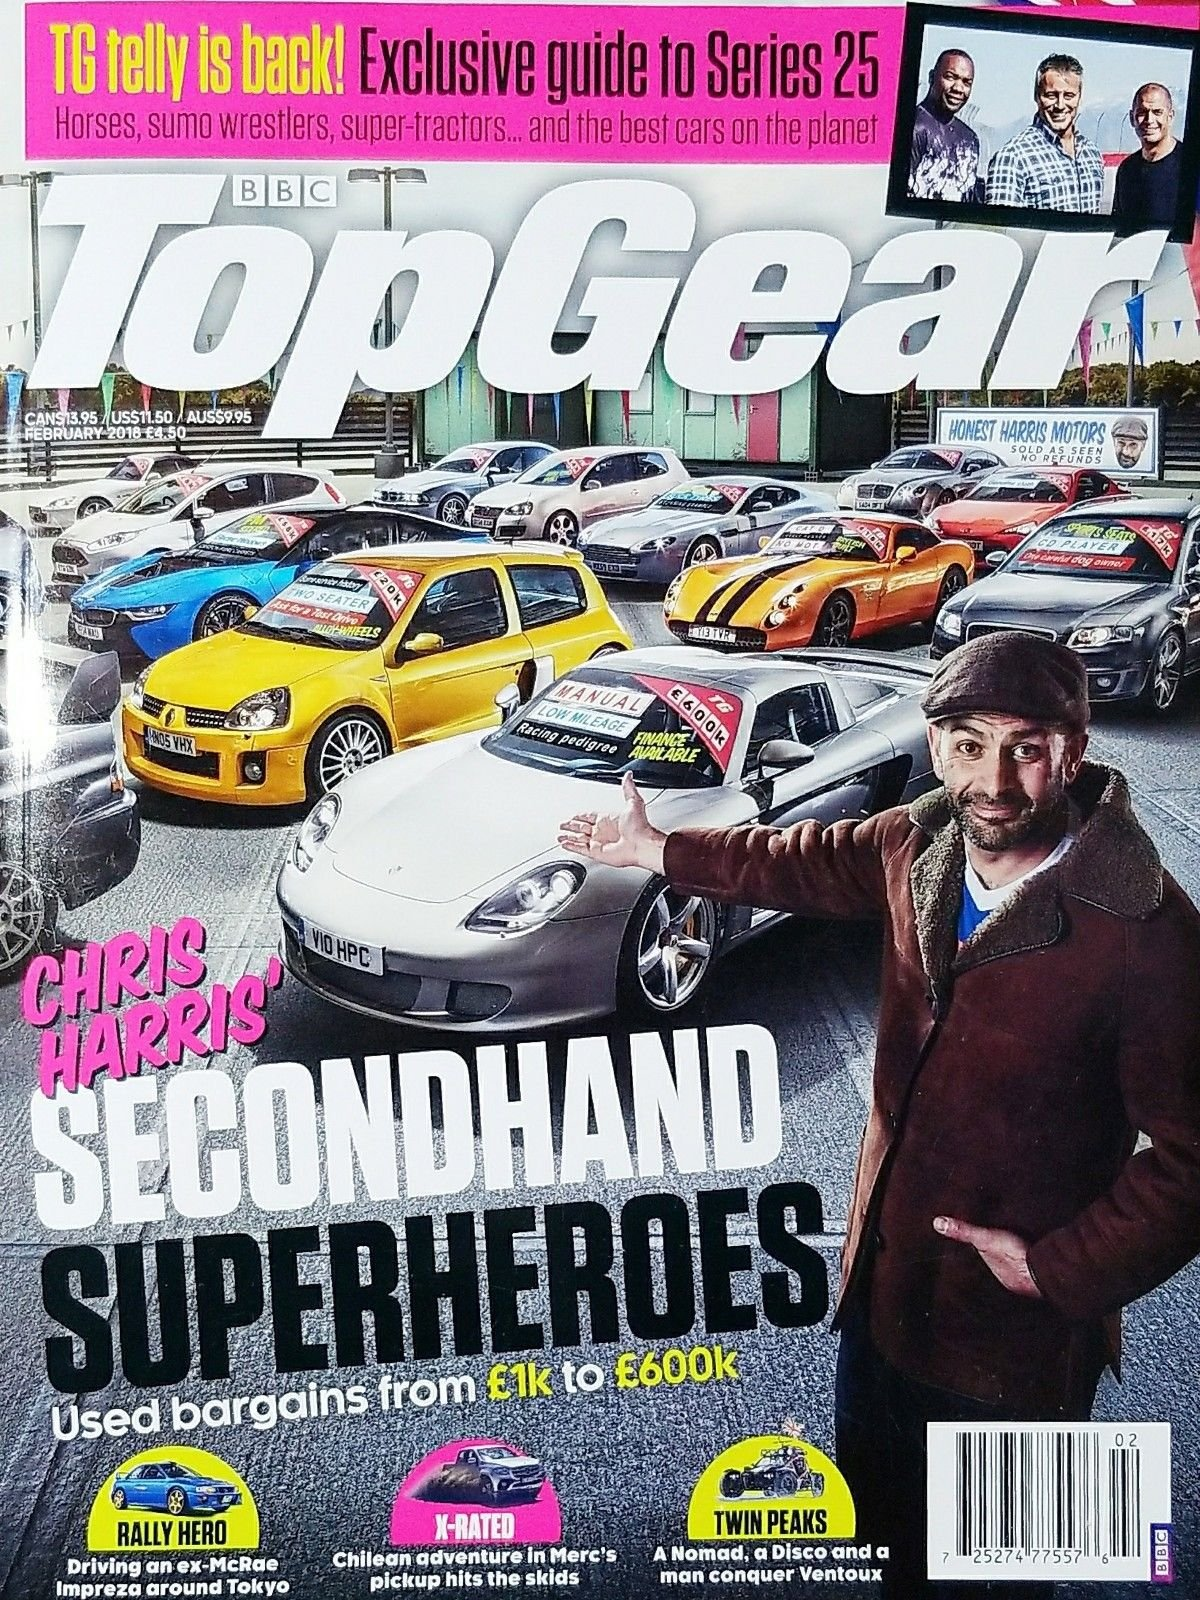 BBC TOP GEAR MAGAZINE FEBRUARY 2018 ISSUE 305 (HARRIS' SECONDHAND SUPERHEROES)^